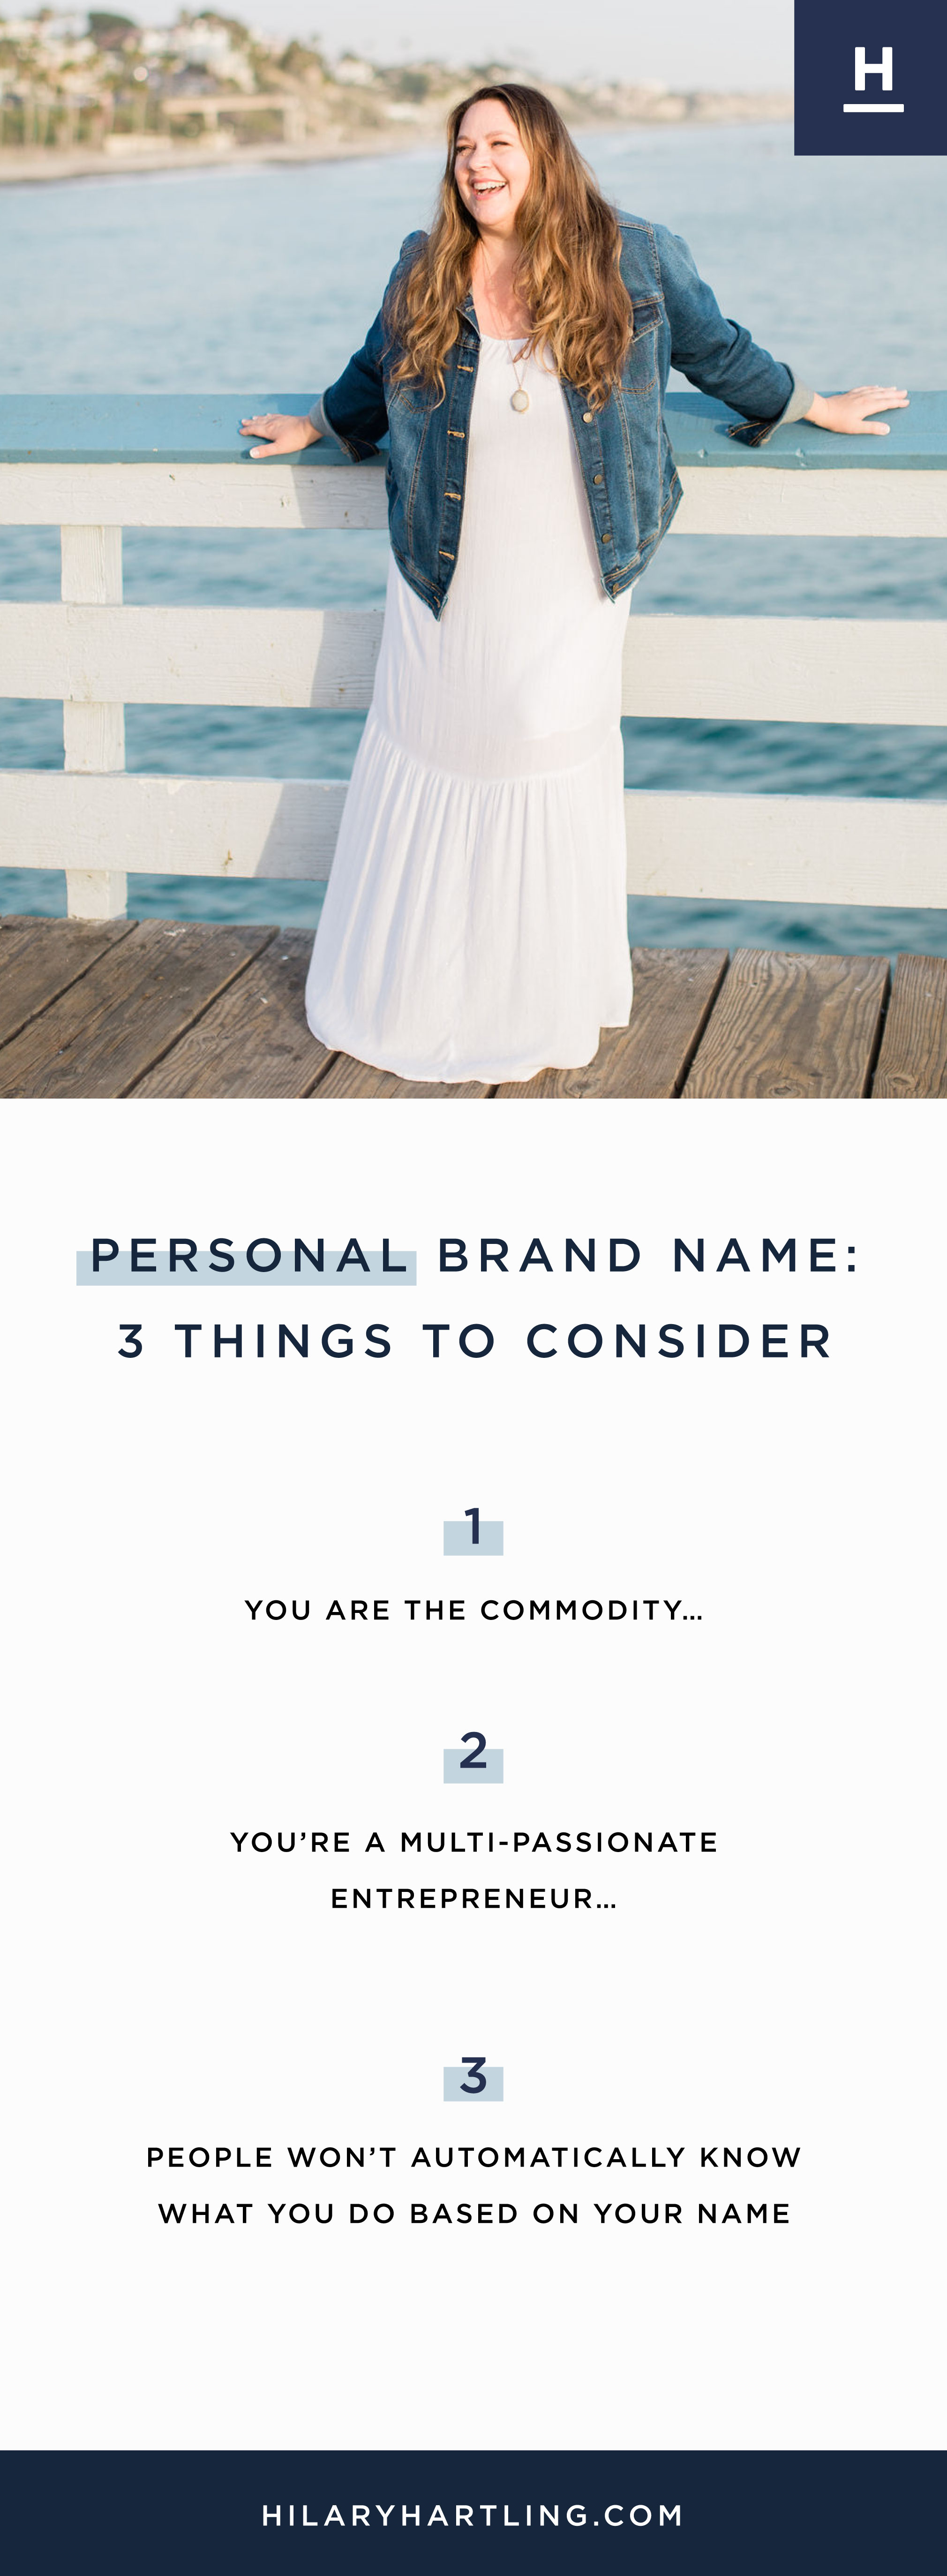 personal-brand-name---3-things-to-consider.jpg